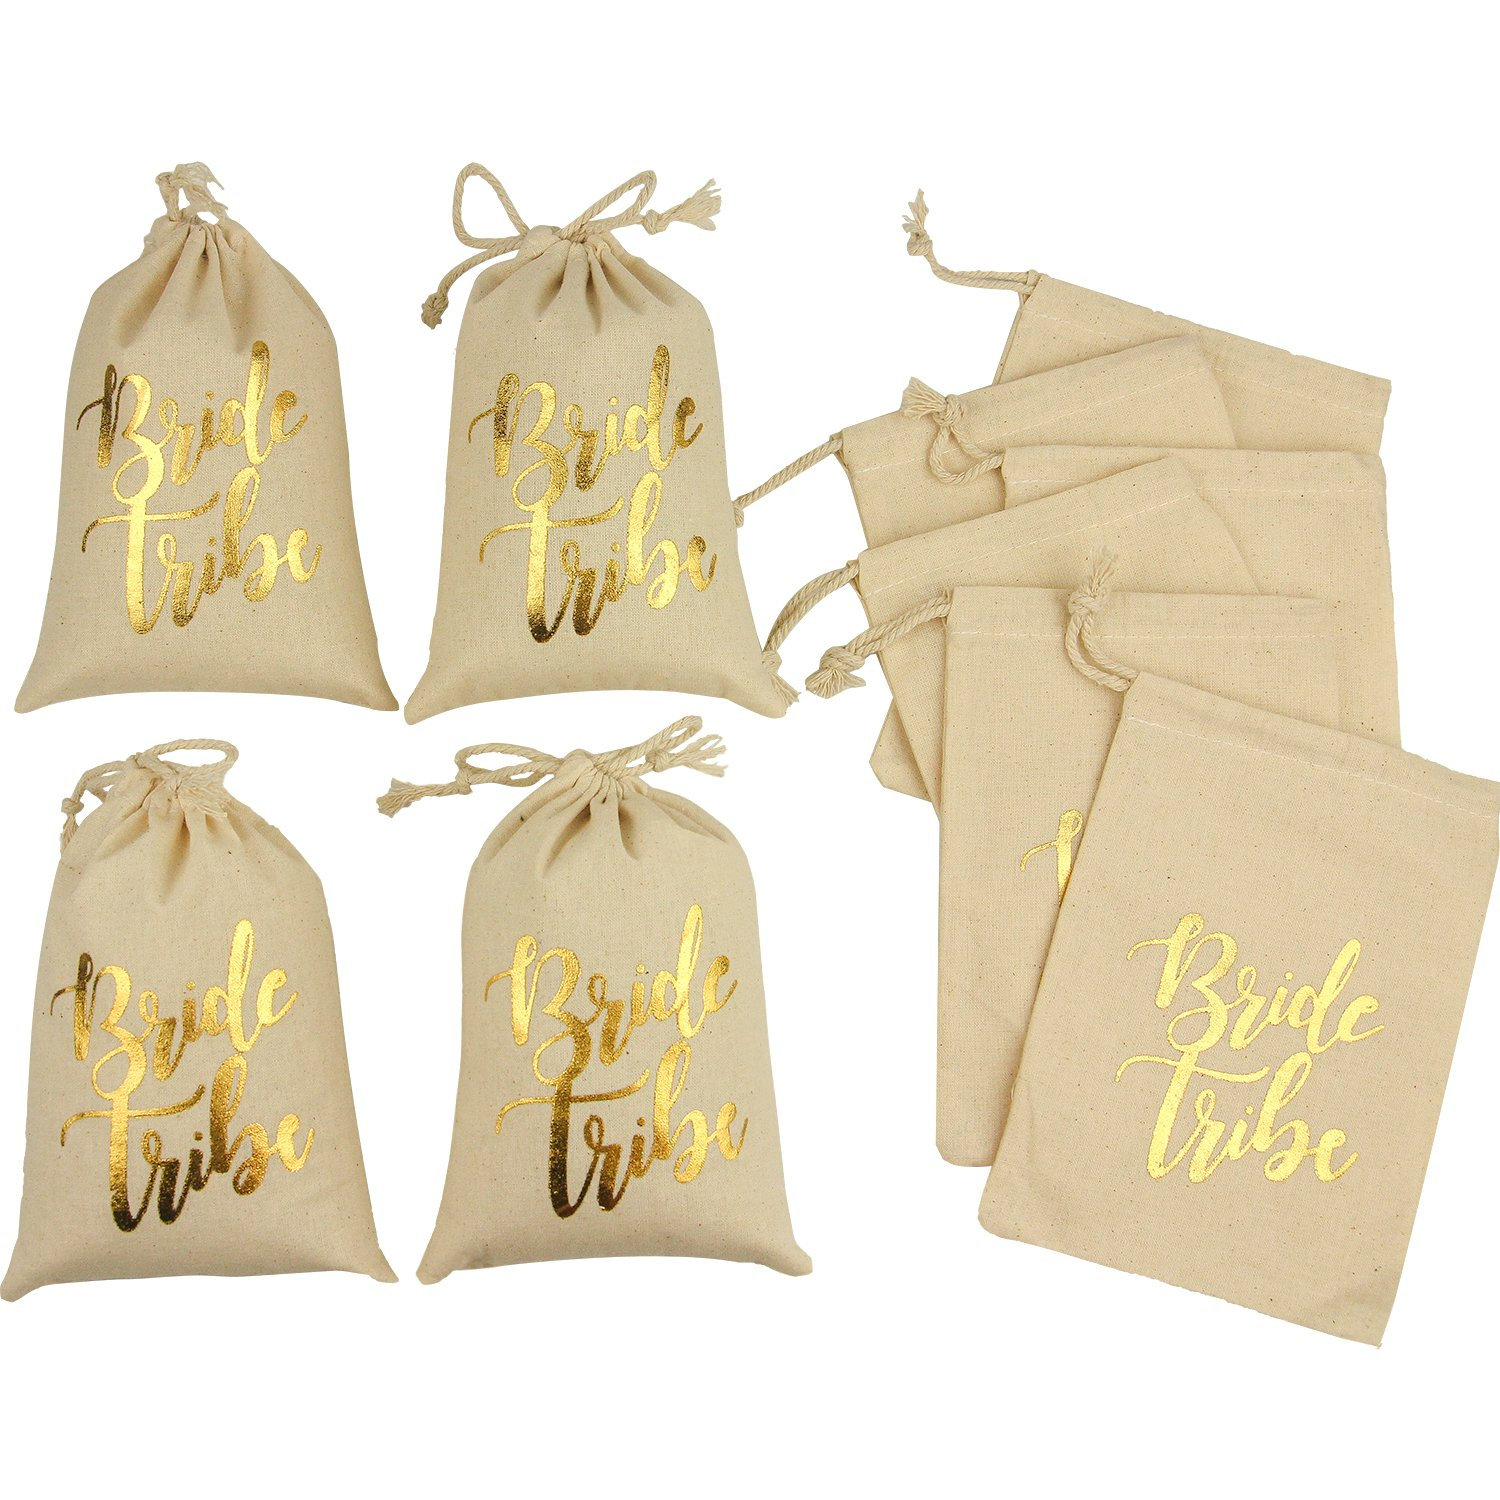 10pcs Wedding Party Favor Bags 5x7 inch Gold FOIL Bride Tribe White Bridesmaid Gift Bags for Bridal Shower Bachelorette Hangover Kit Bags Recovery Kit Bags Cotton Muslin Drawstring Bag